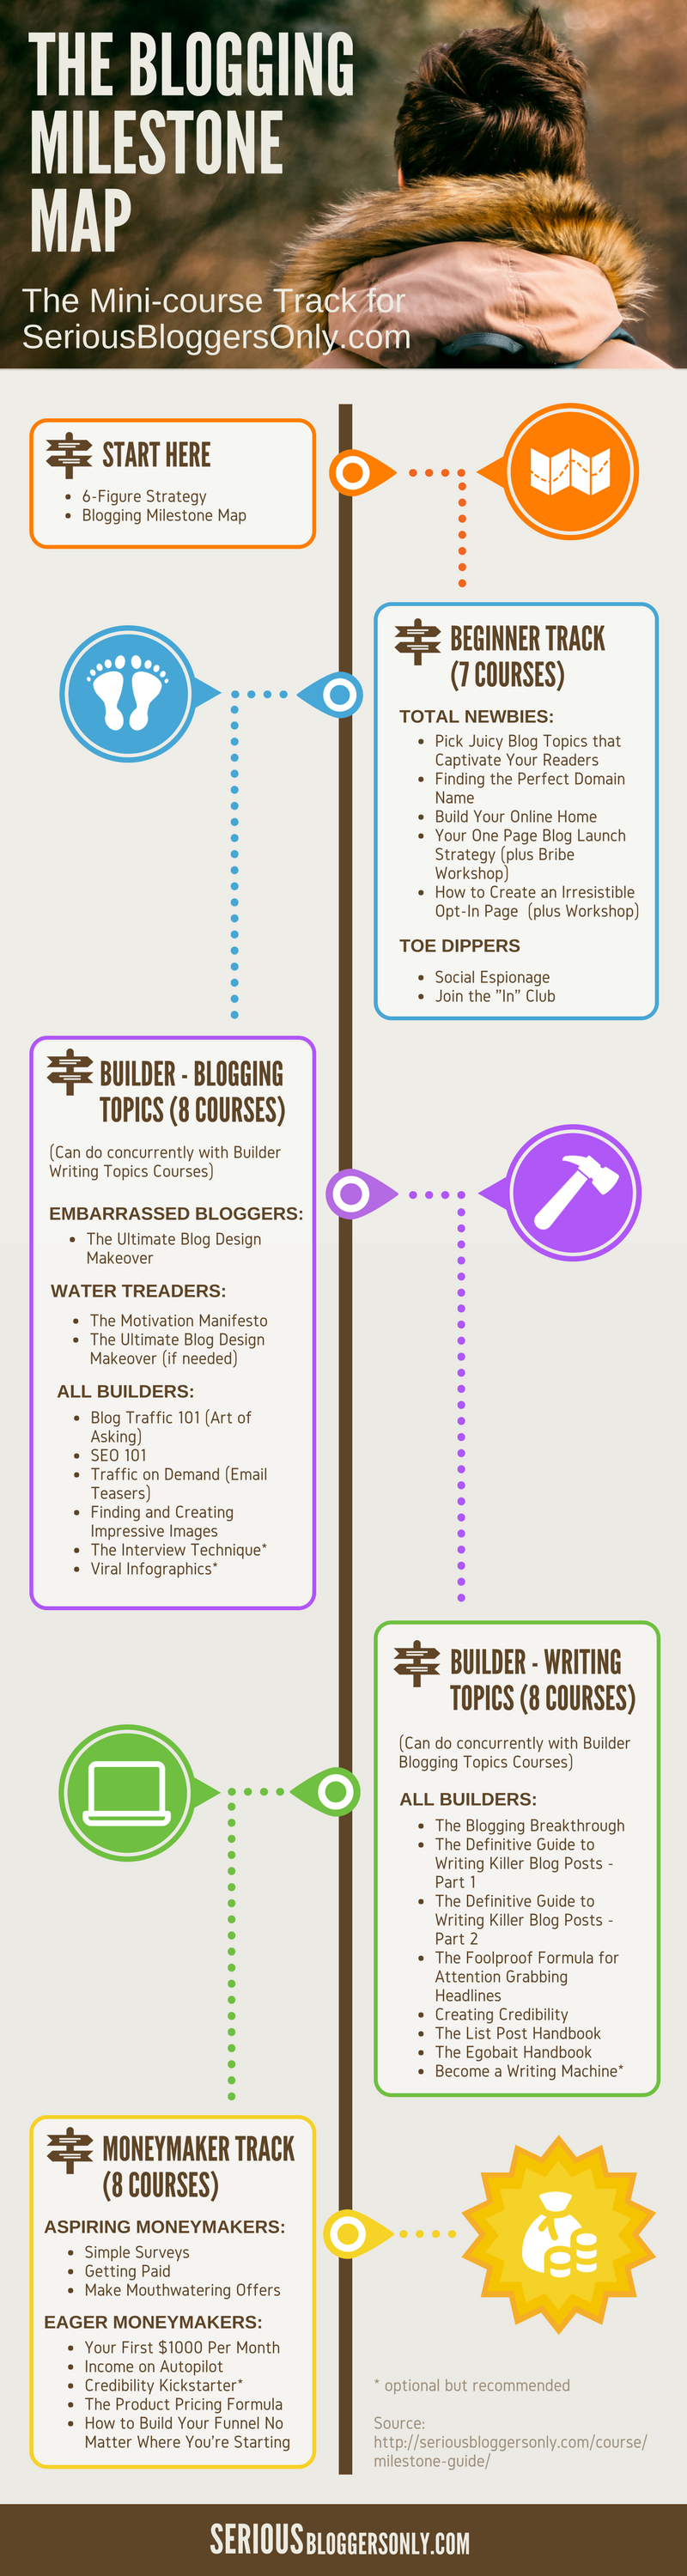 The Blogging Milestone Map Infographic